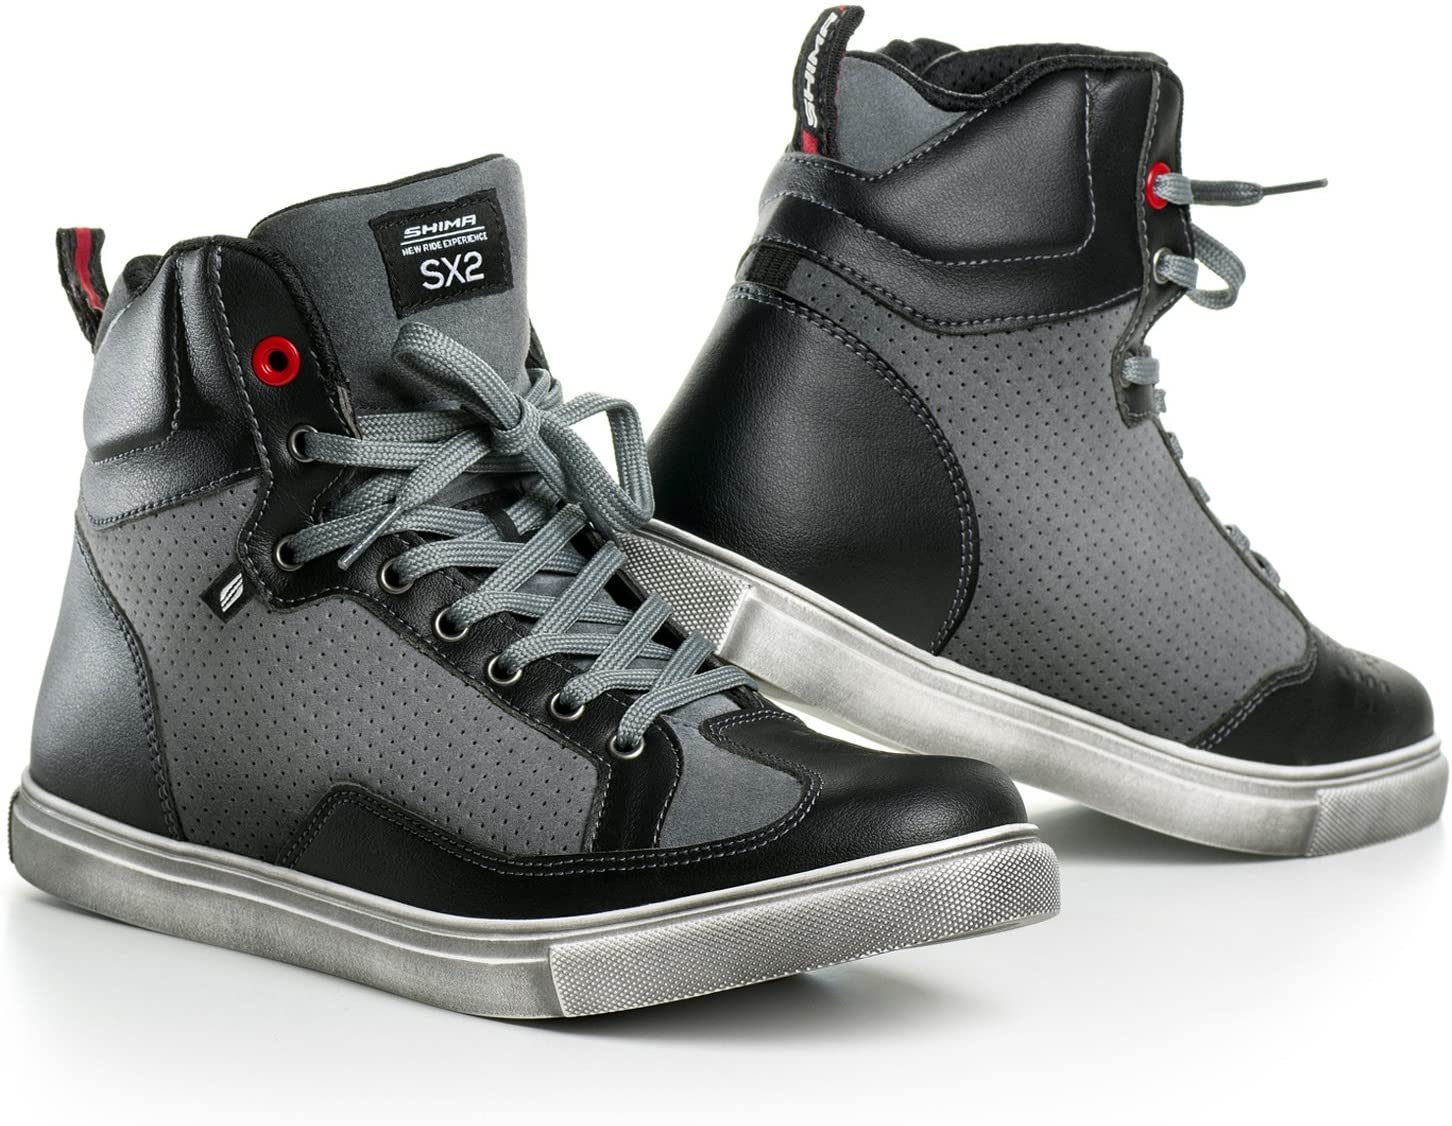 Max 72% OFF SHIMA SX-2 Selling Motorcycle Shoes for Reinf Breathable men Leather